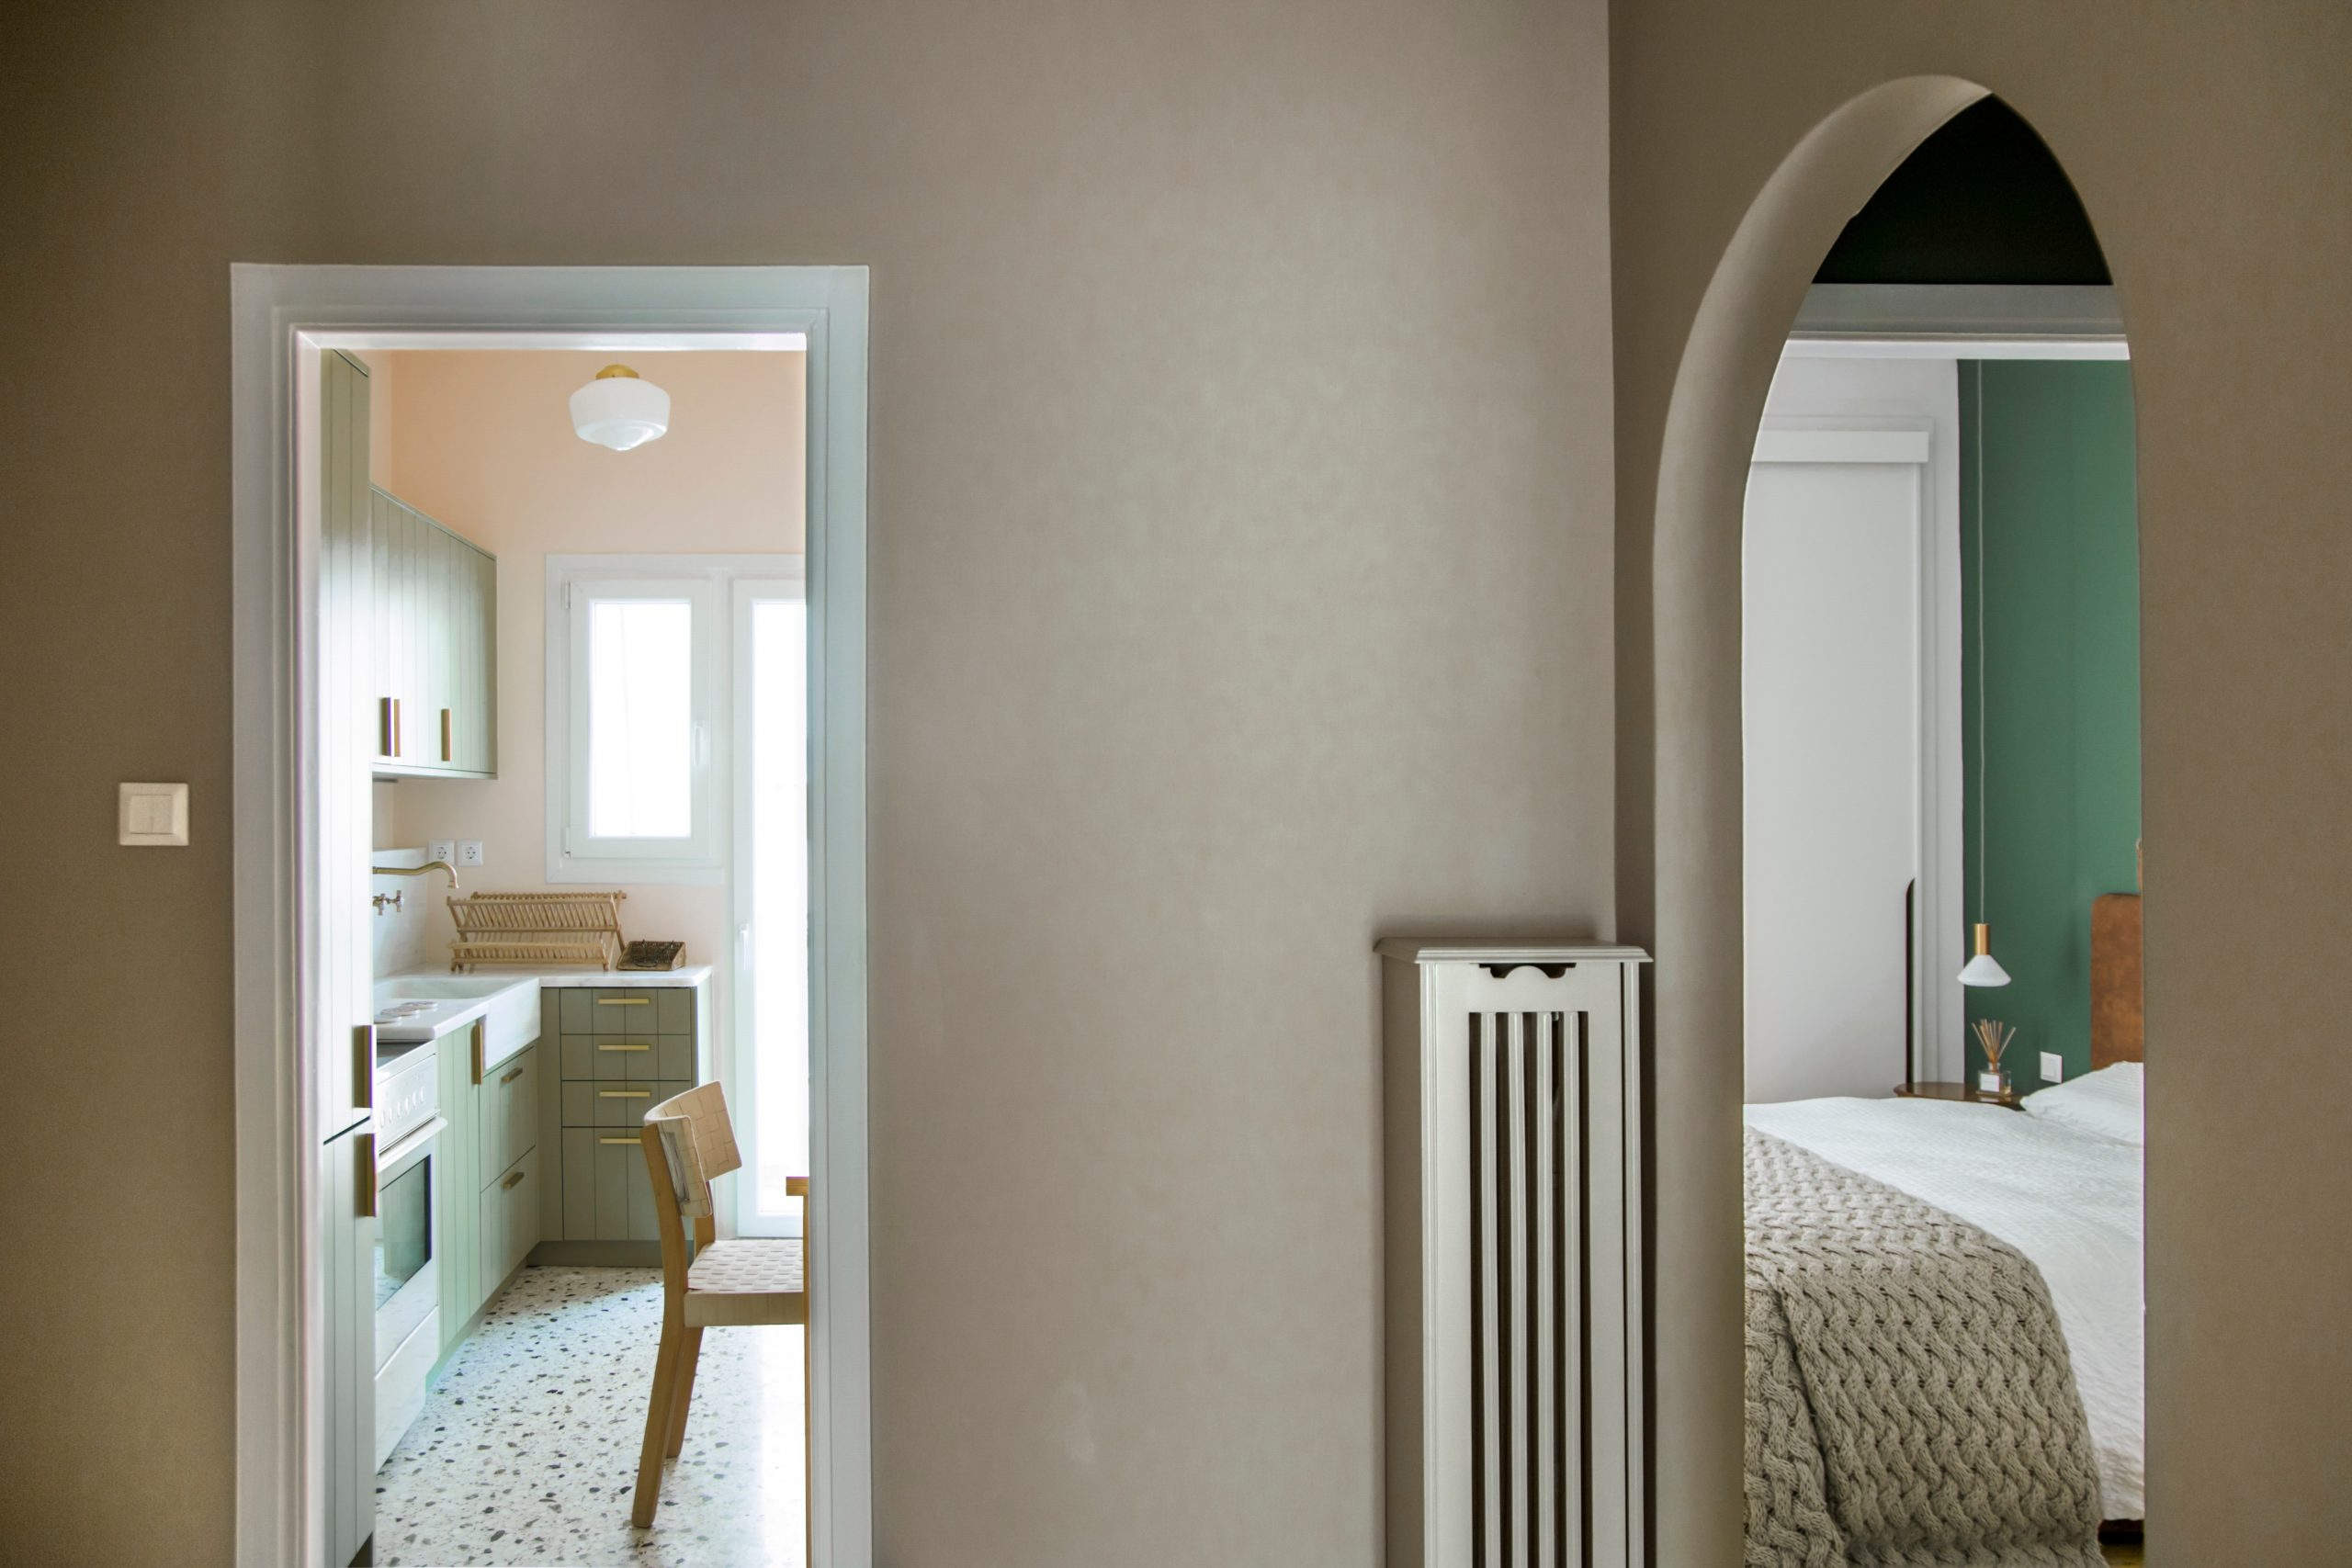 Renovation of a 1977 Apartment in Athens, Greece by Evelyn Chatzigoula